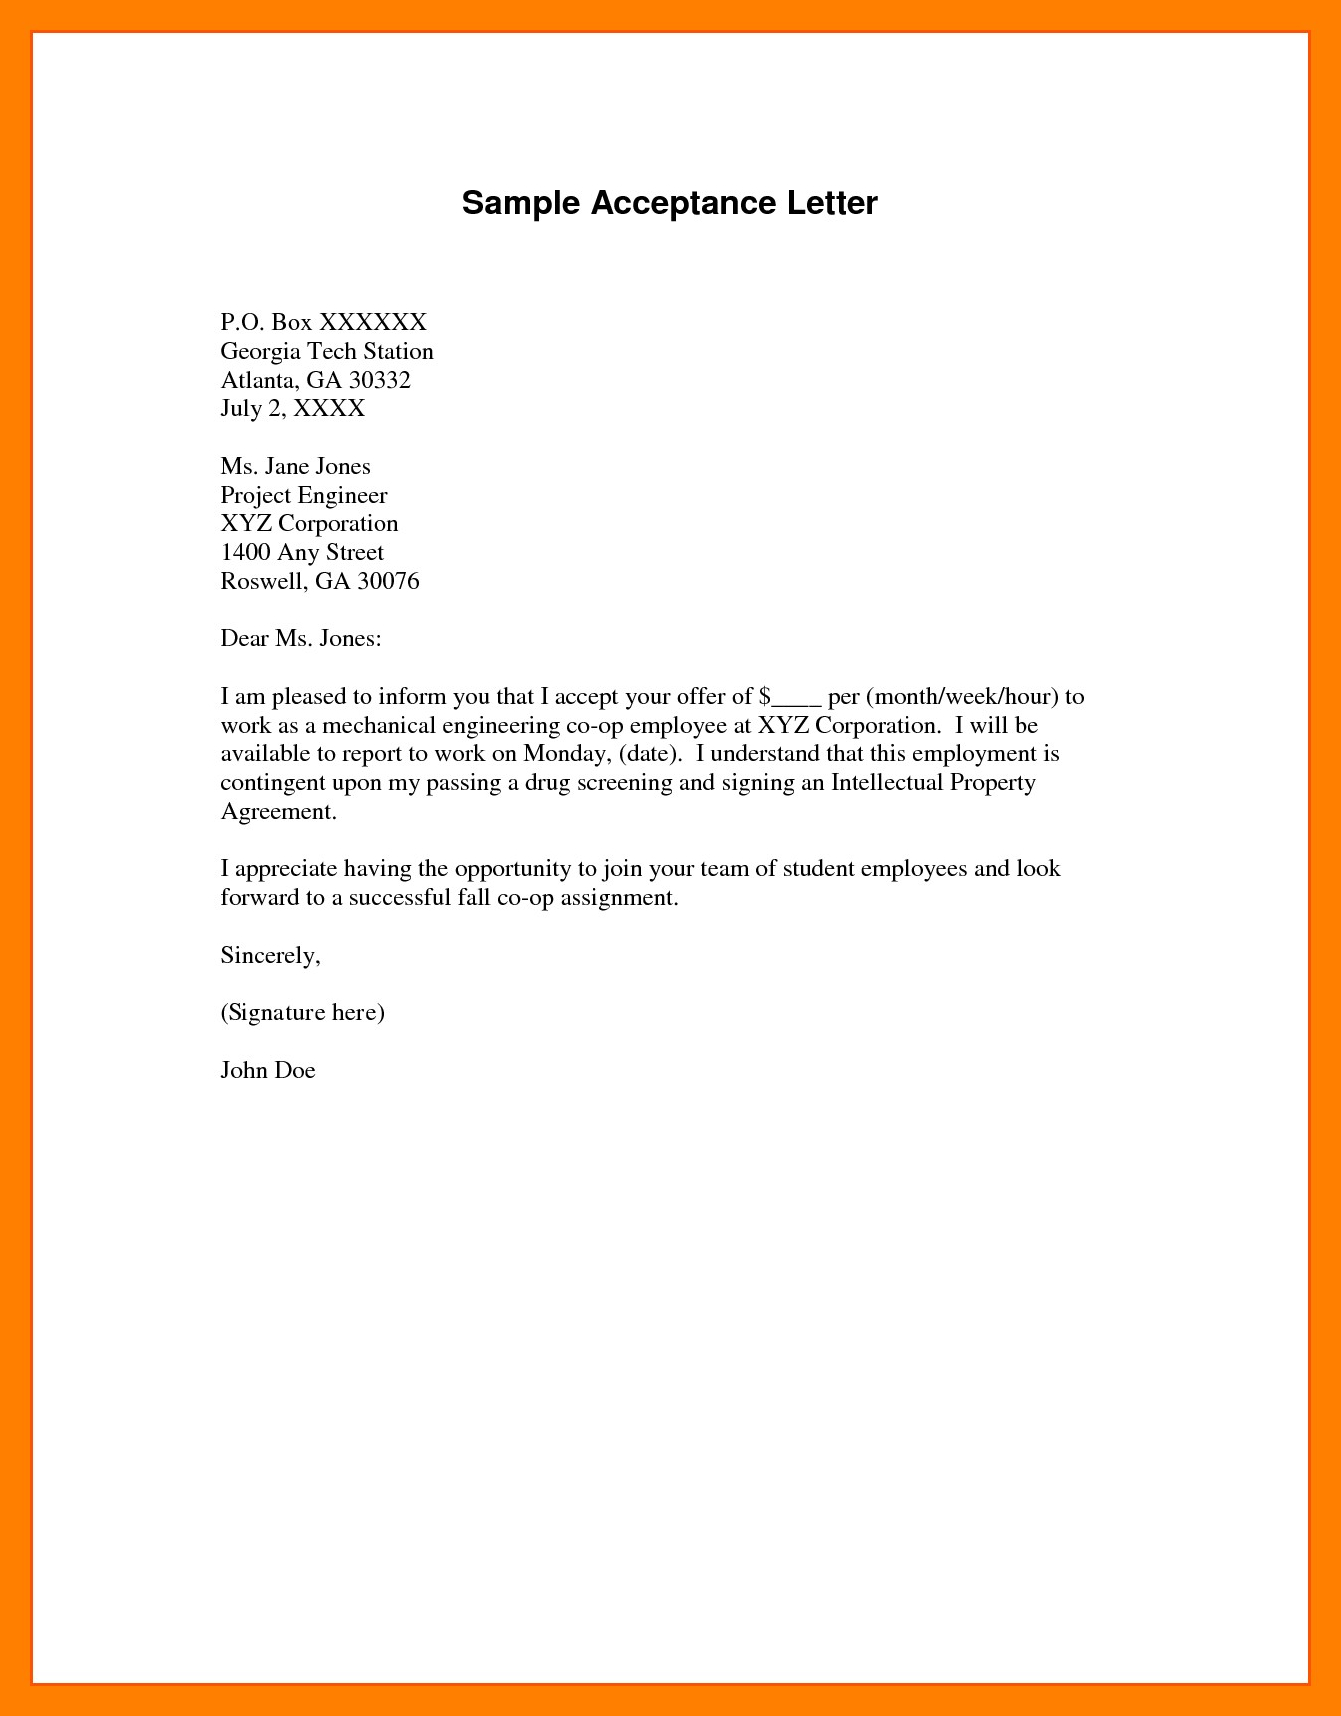 Example Of Acceptance Letter  Penn Working Papers Intended For College Acceptance Letter Template